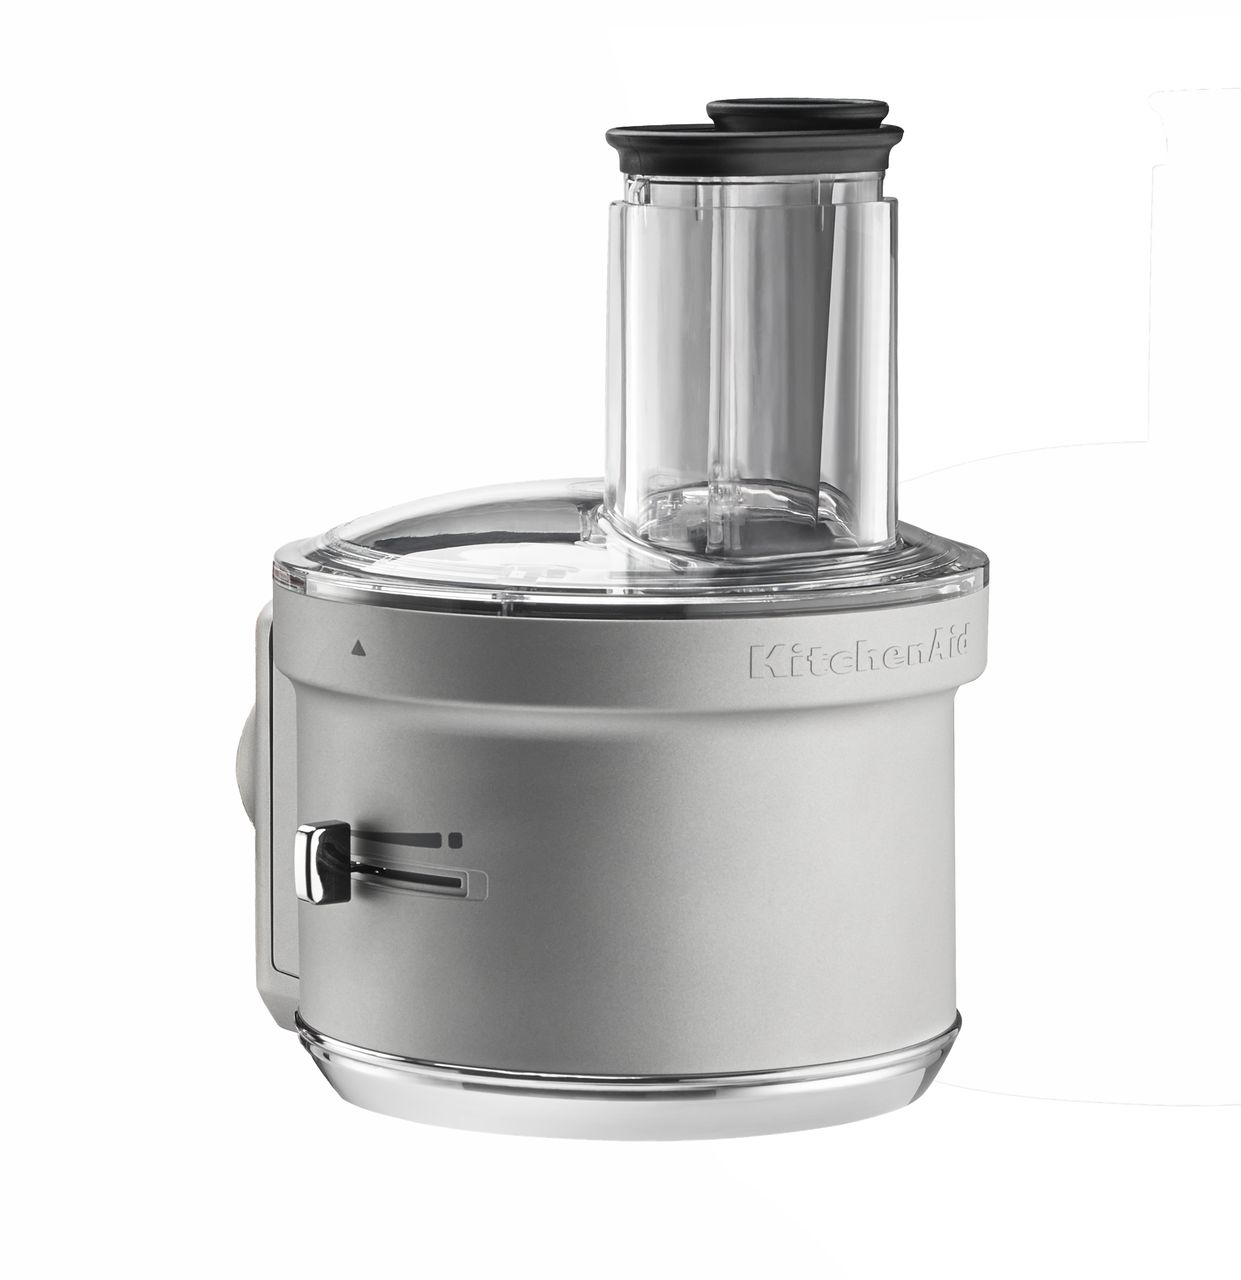 KitchenAid® Food Processor Attachment with Commercial Style Dicing Kit